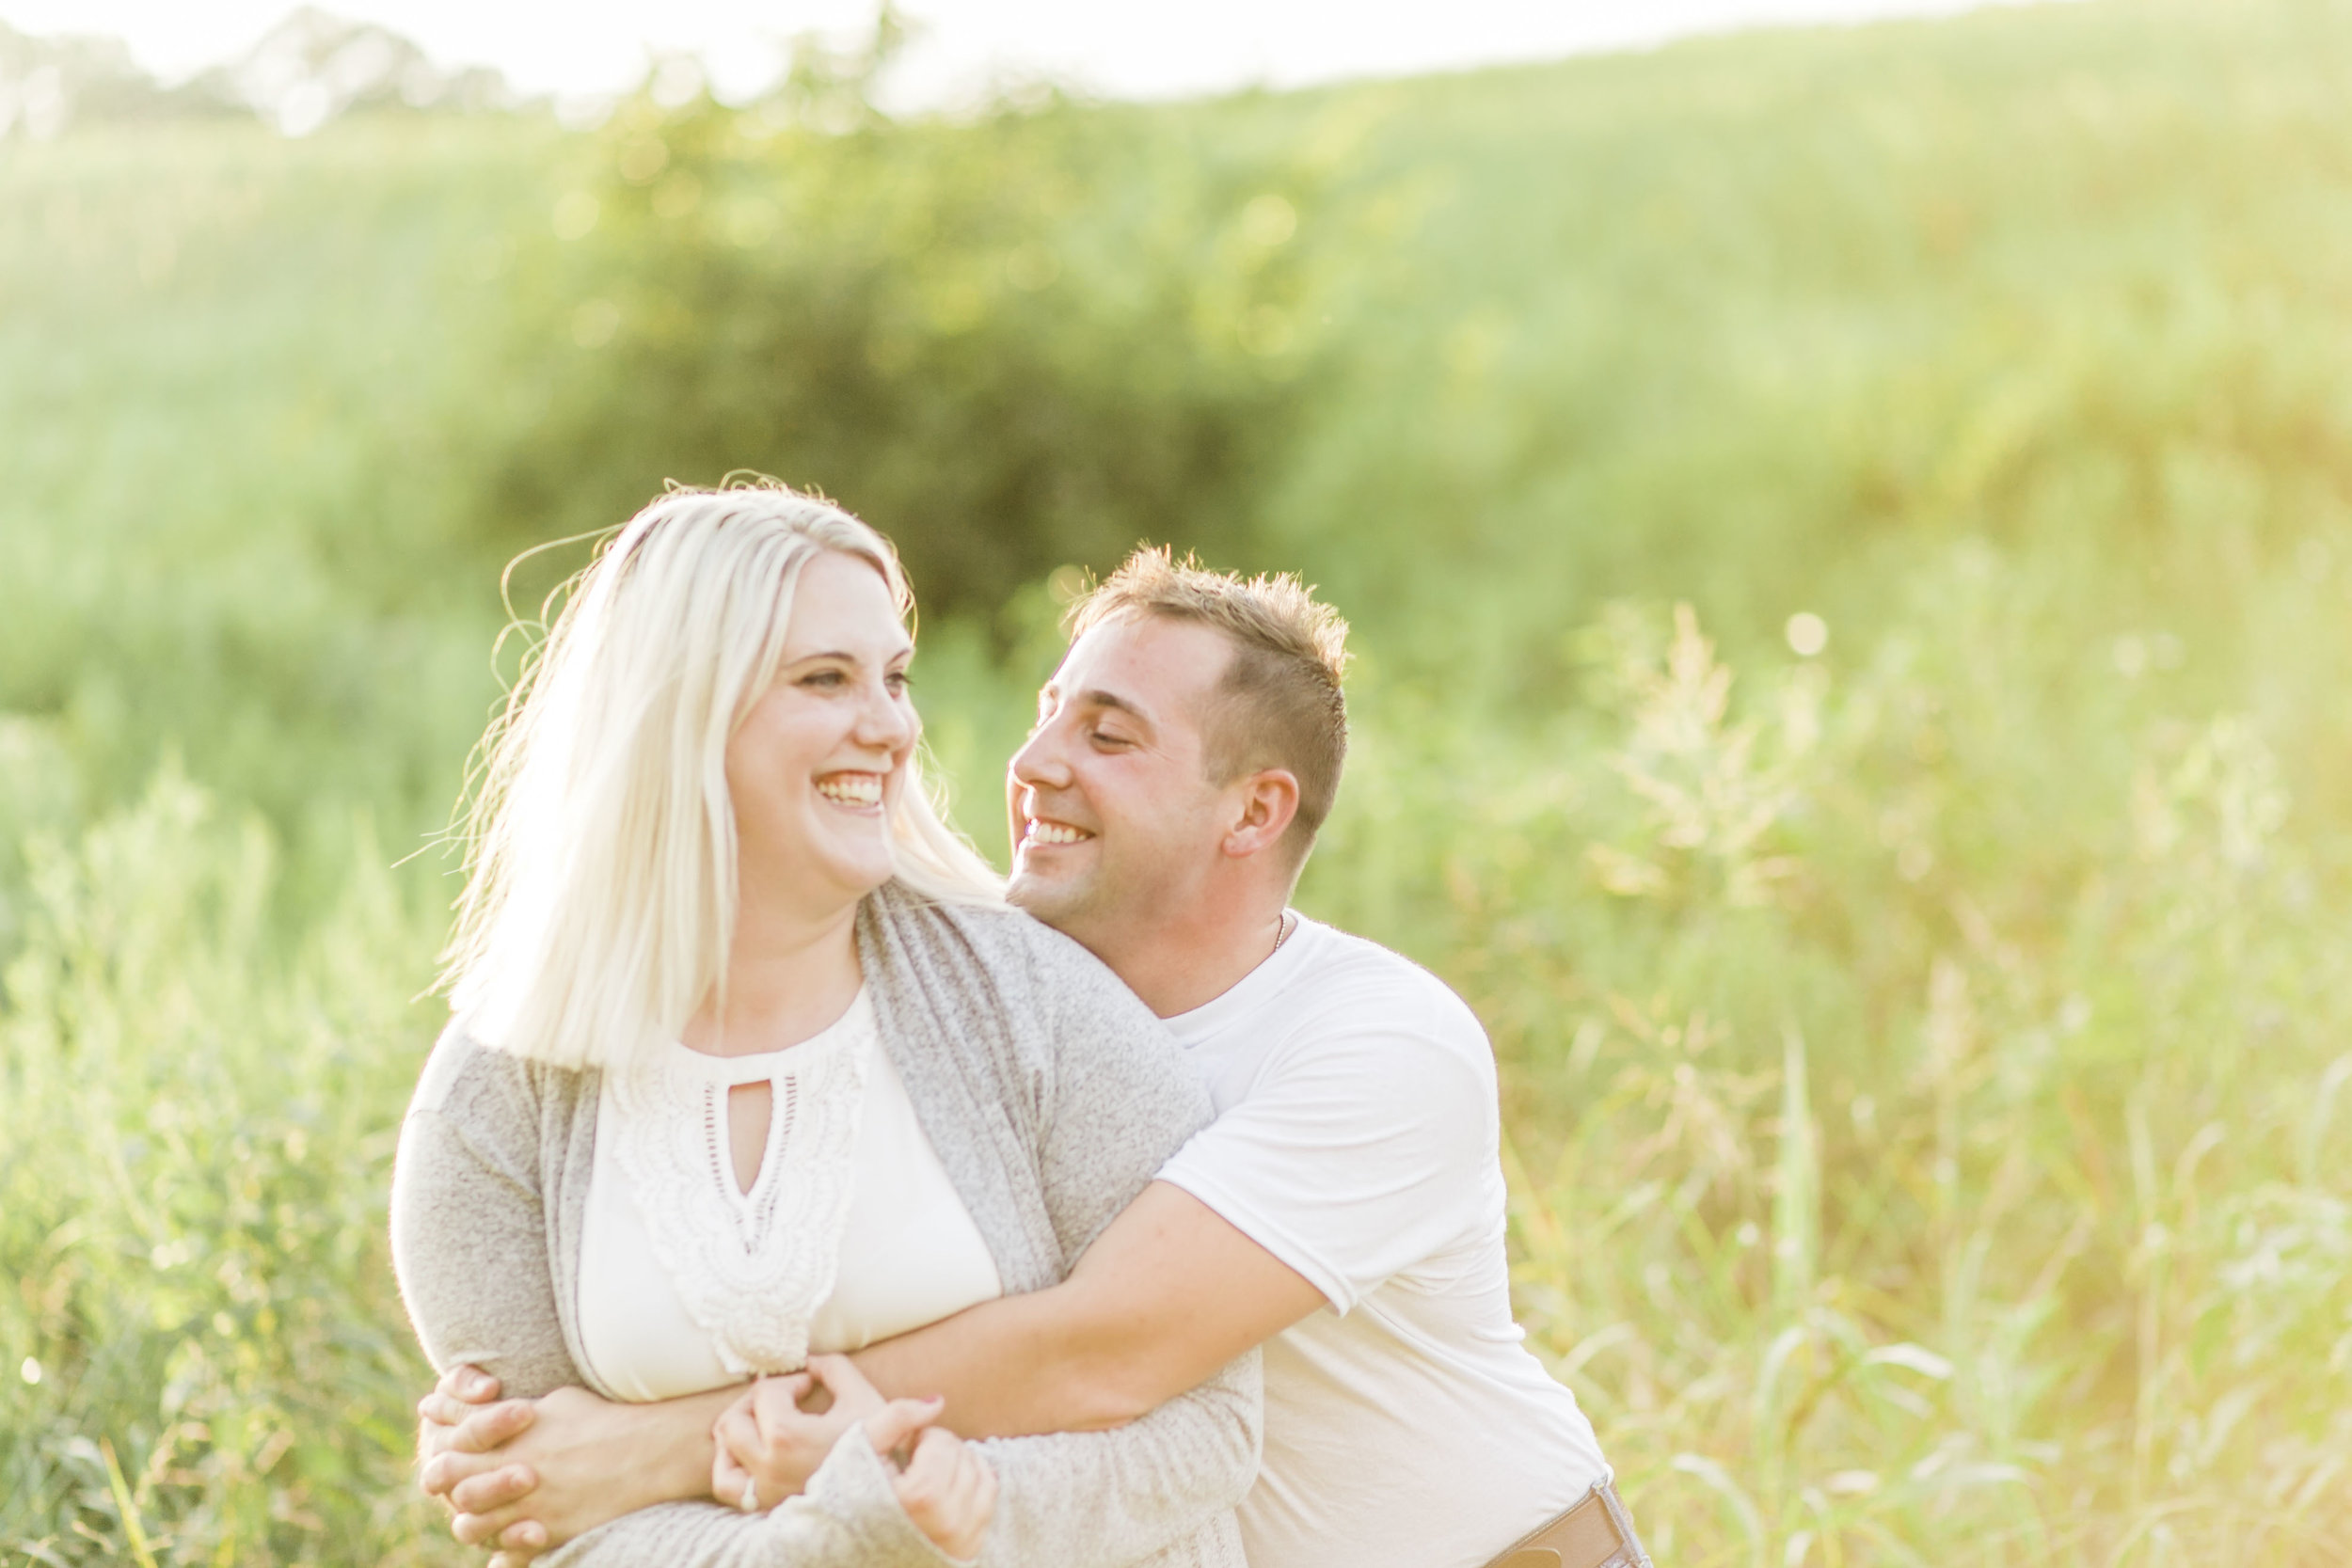 natural engagement couples photos knoxville winx photo photographers